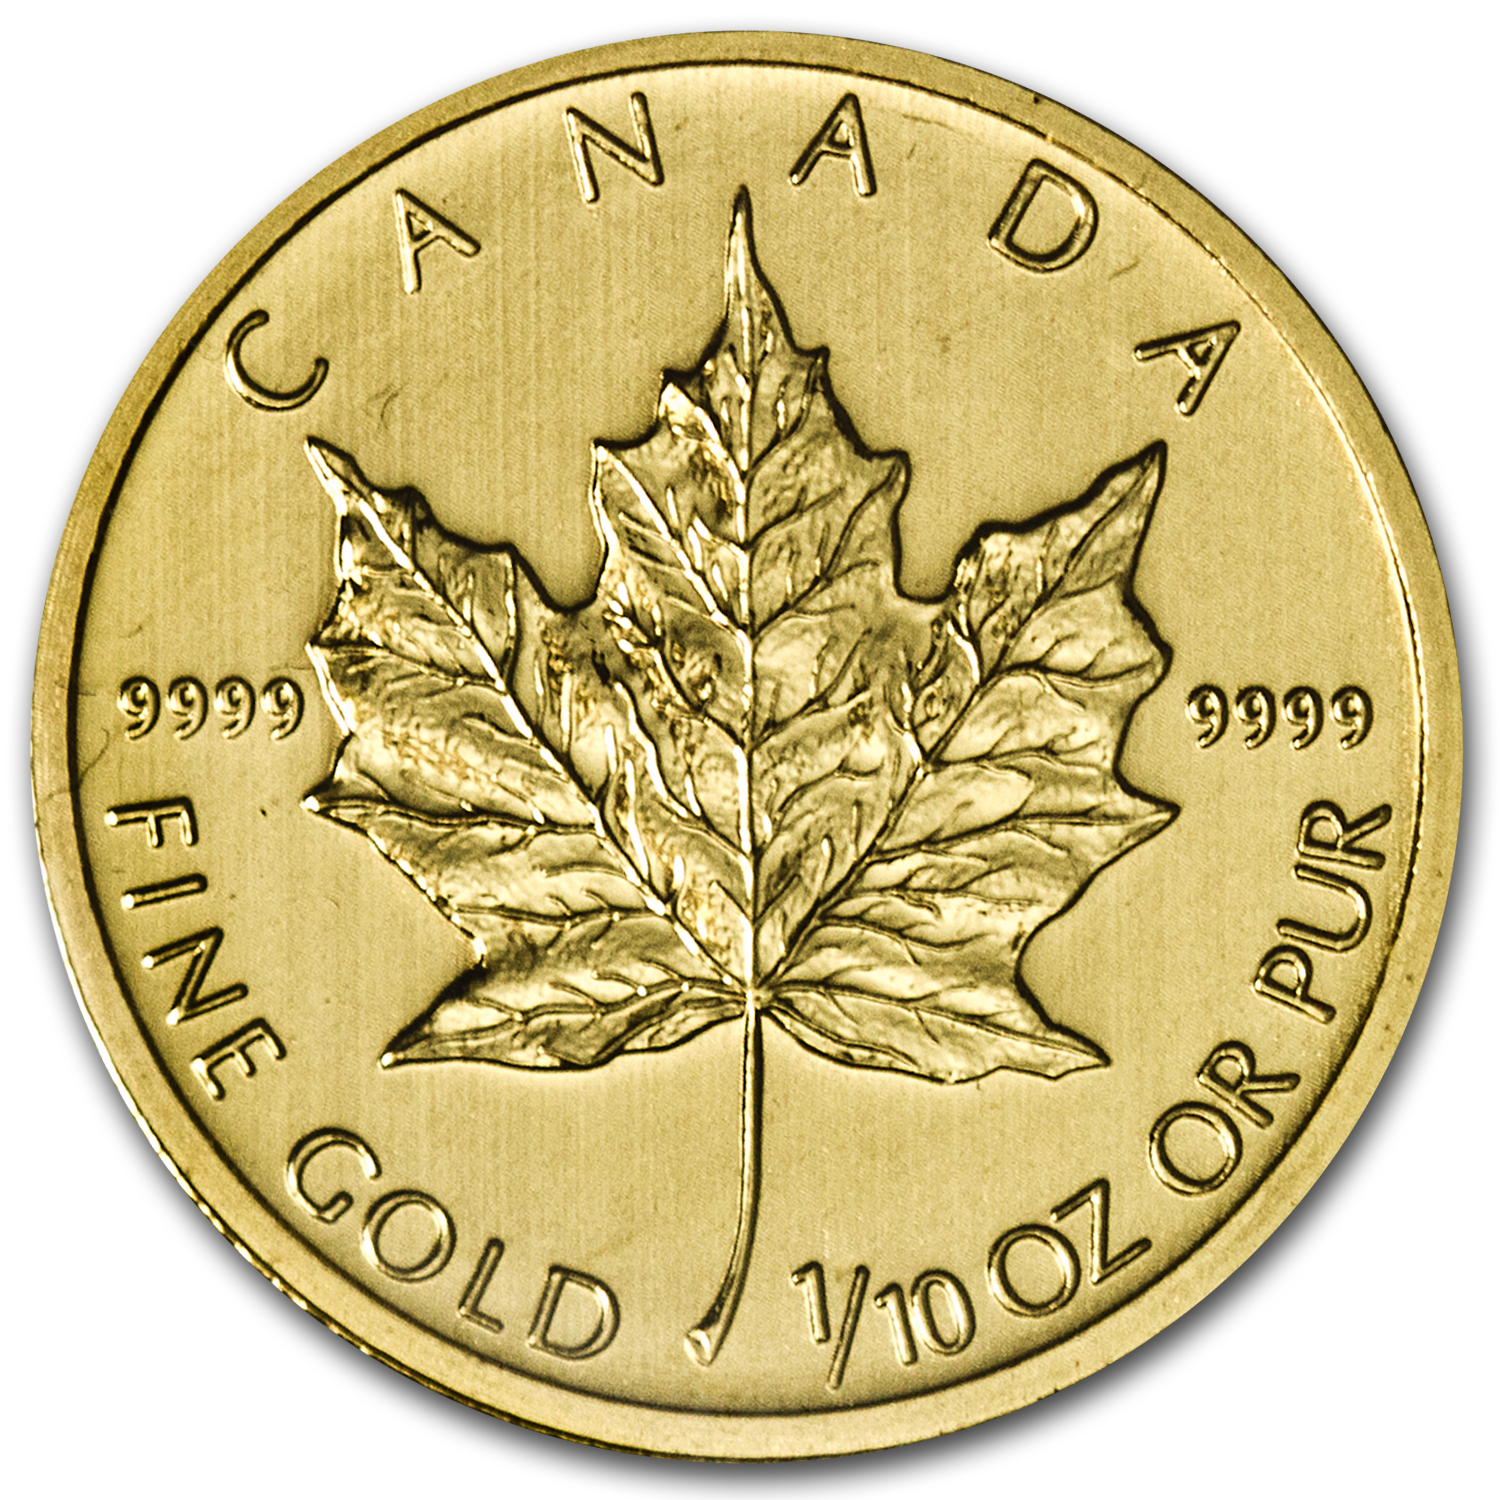 2013 1/10 oz Gold Canadian Maple Leaf BU